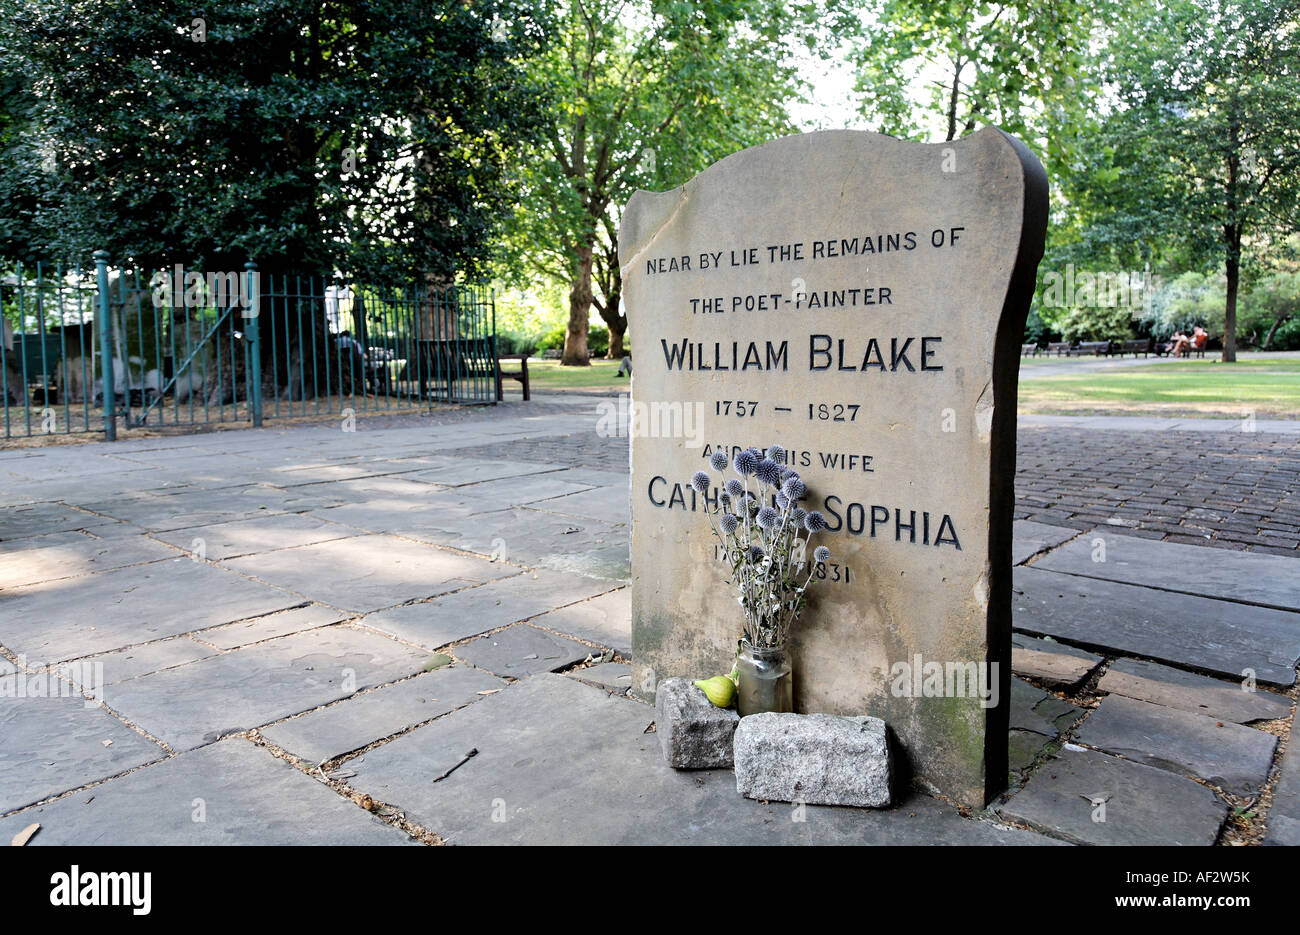 Grave of William Blake in Bunhill Fields Cemetery London UK - Stock Image